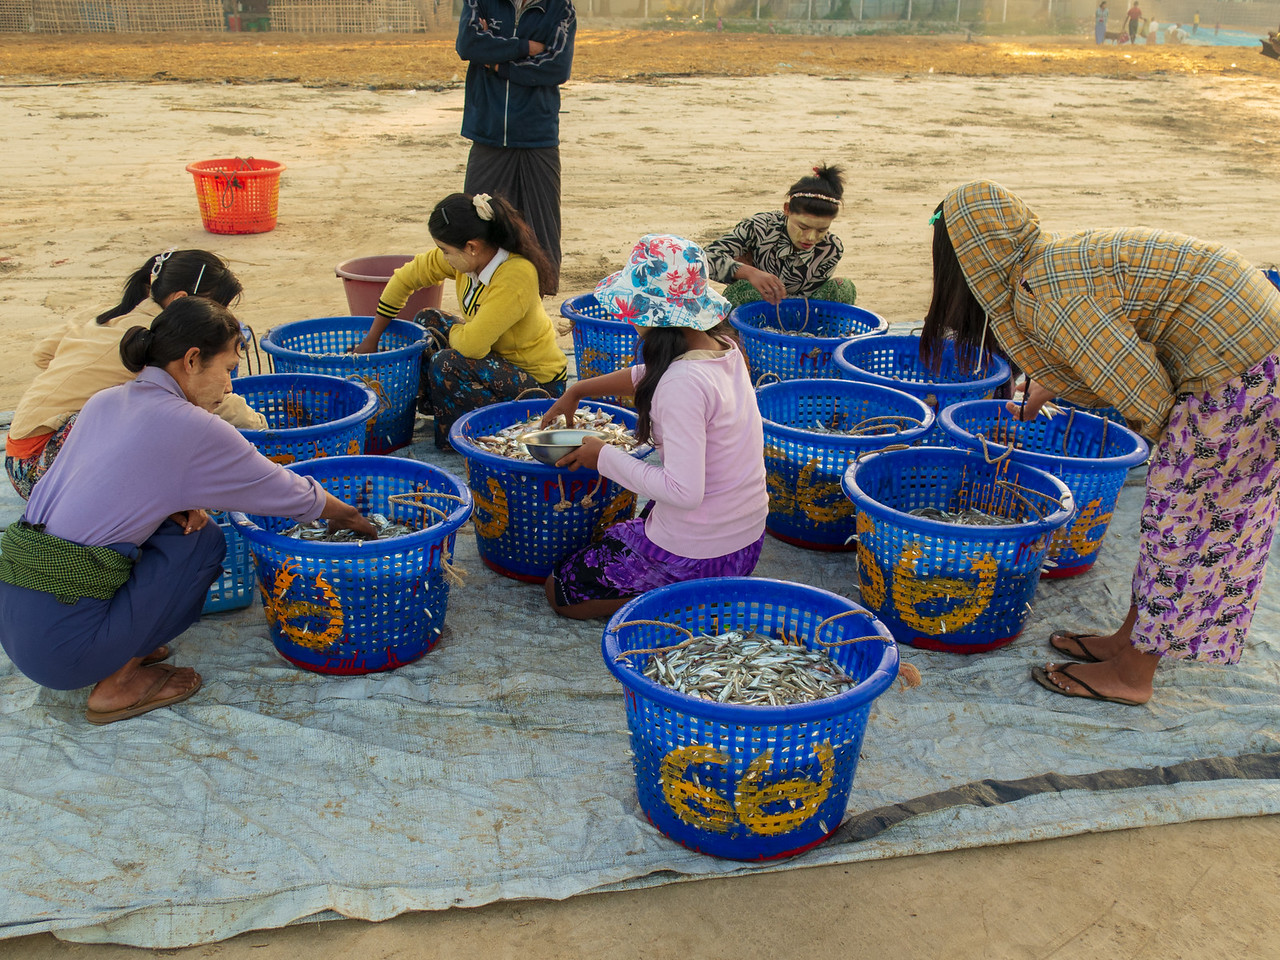 Baskets of Fish Being Prepared for Drying